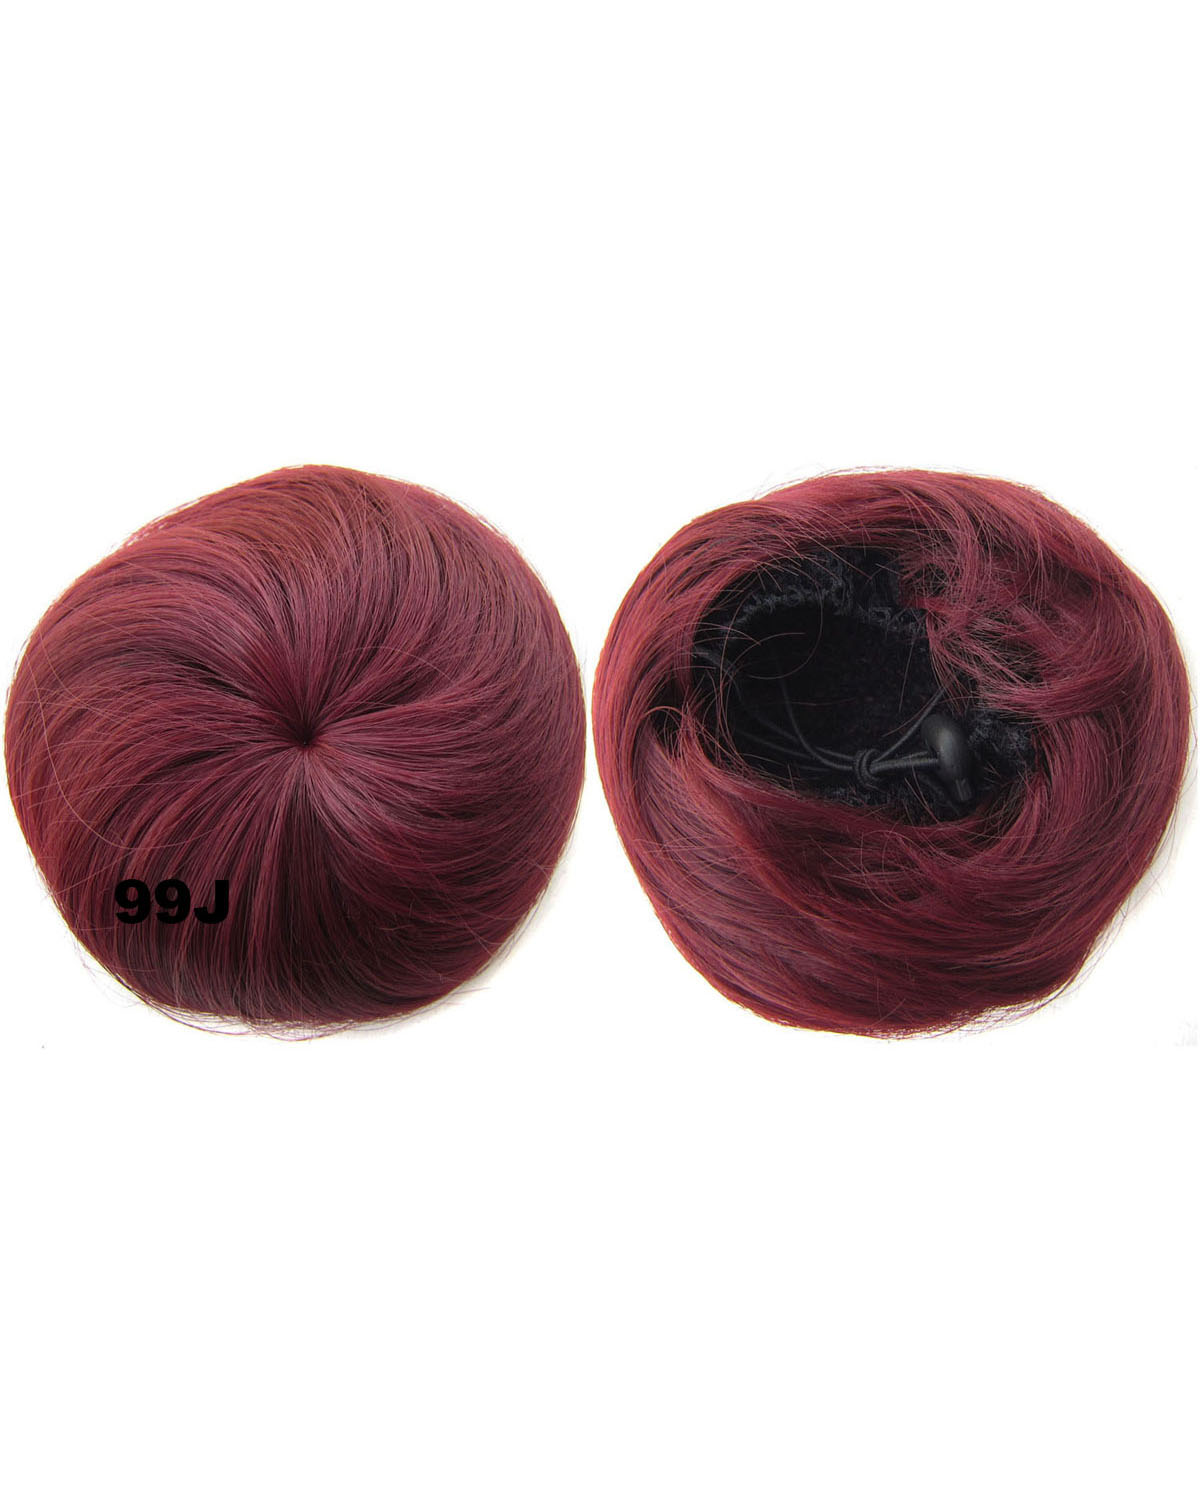 Ladies Elaborate and Smooth Curly and Short Hair Buns Drawstring Synthetic Hair Extension Bride Scrunchies 99J